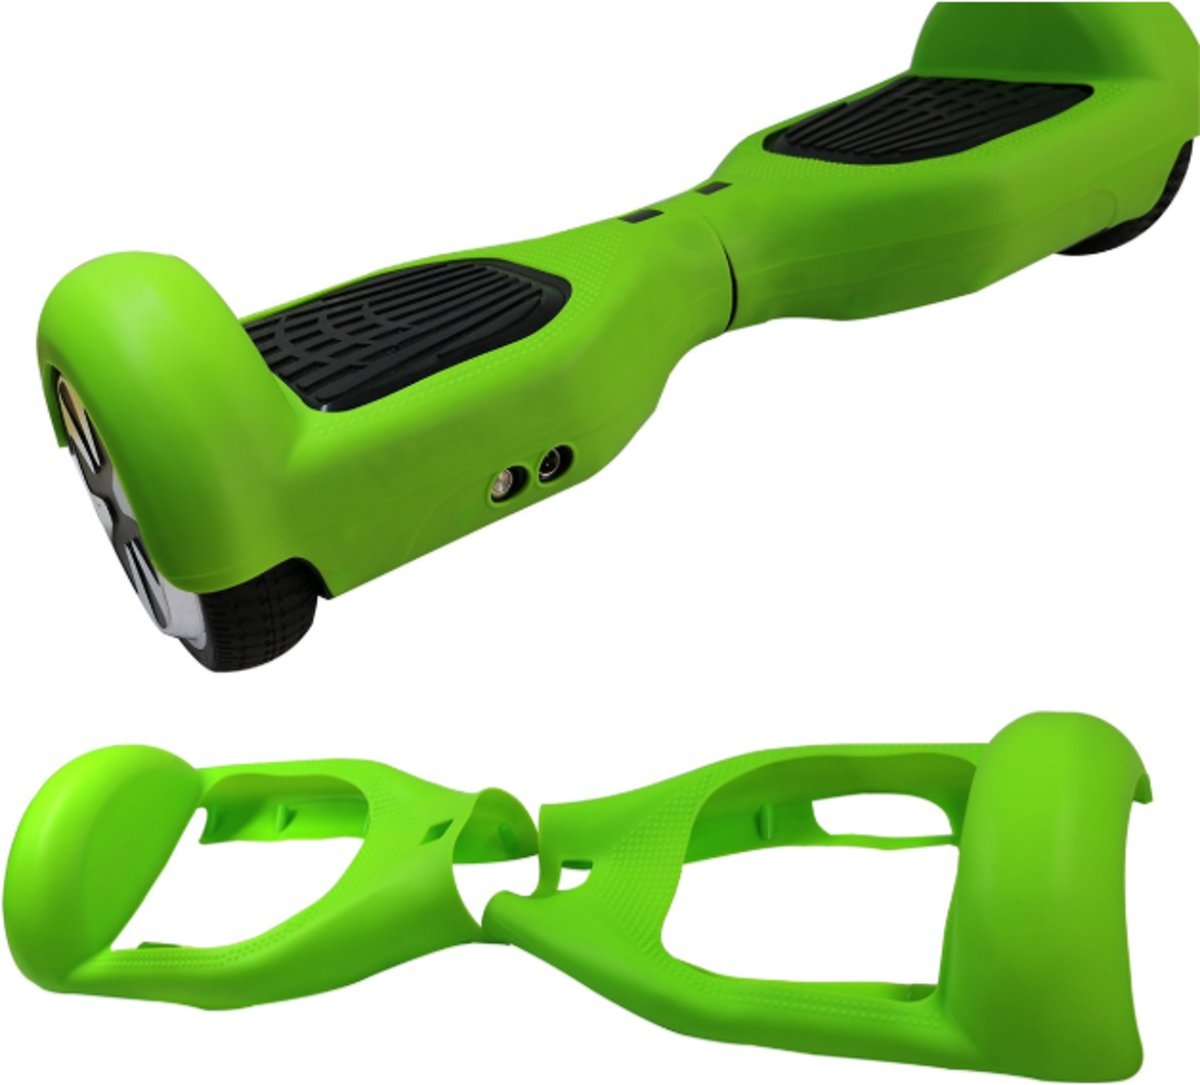 Hoverboard  Silicone Hoesje voor hoverboard 6.5 inch-Groen